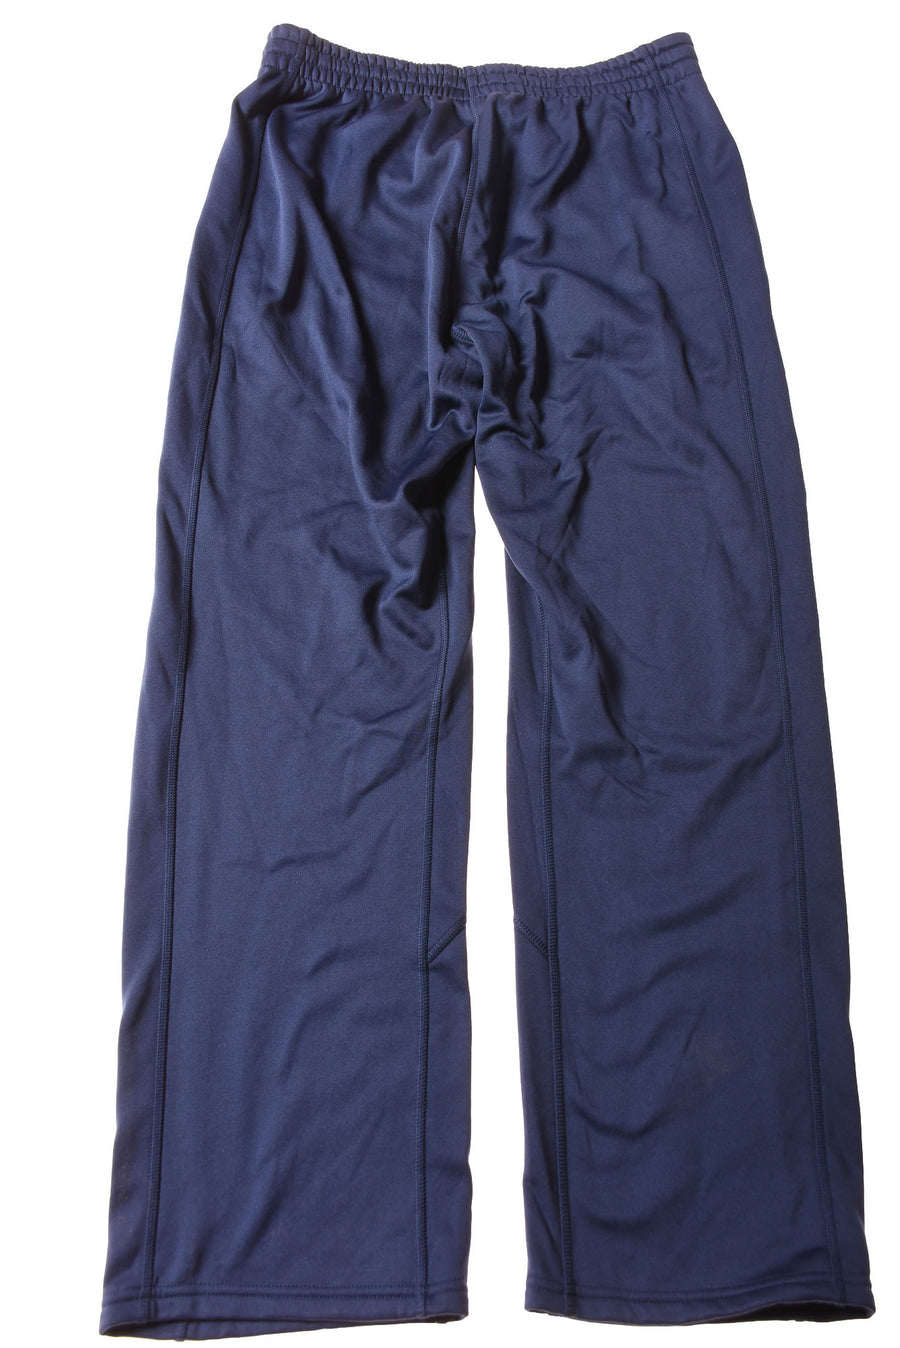 NEW Nike Women's Pants By Nike Medium Blue